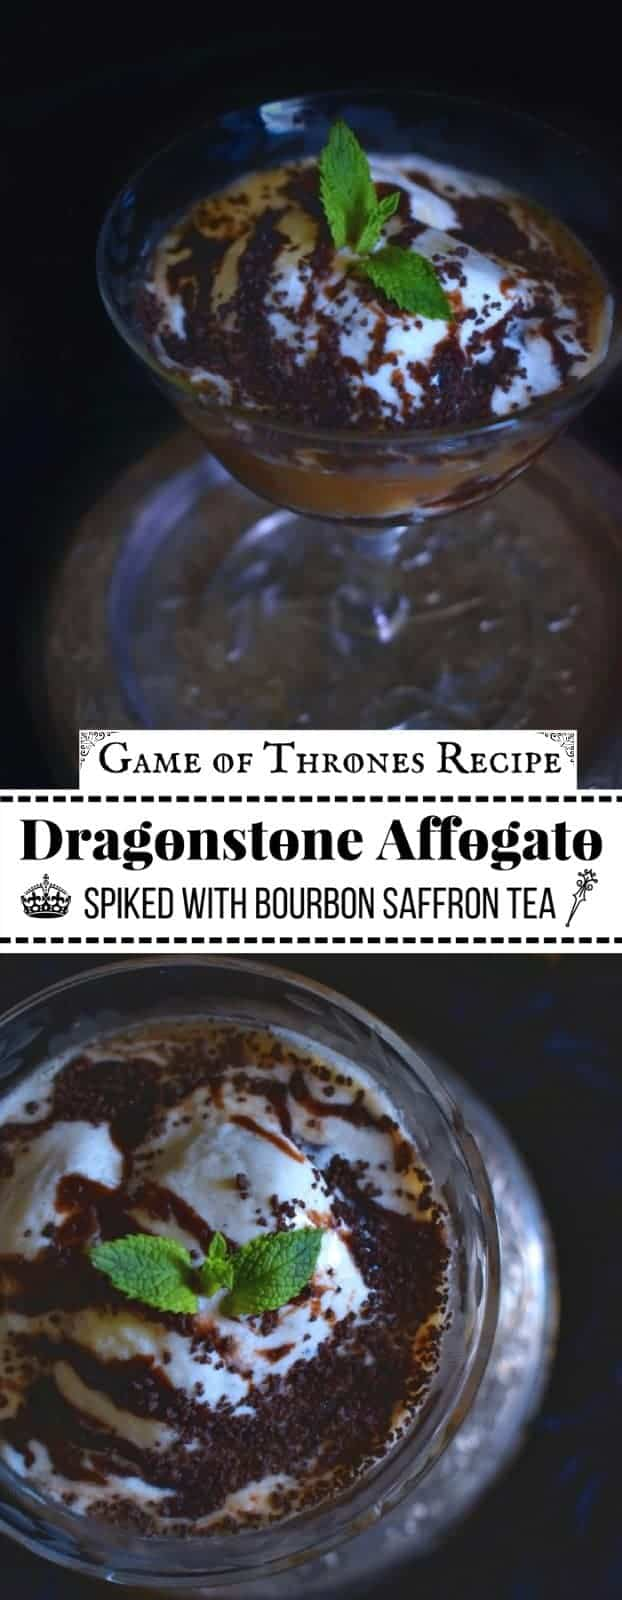 Dragonstone Affogato - Spiked with Bourbon-Saffron Tea: #gameofthrones #affogato #bourbon #saffron